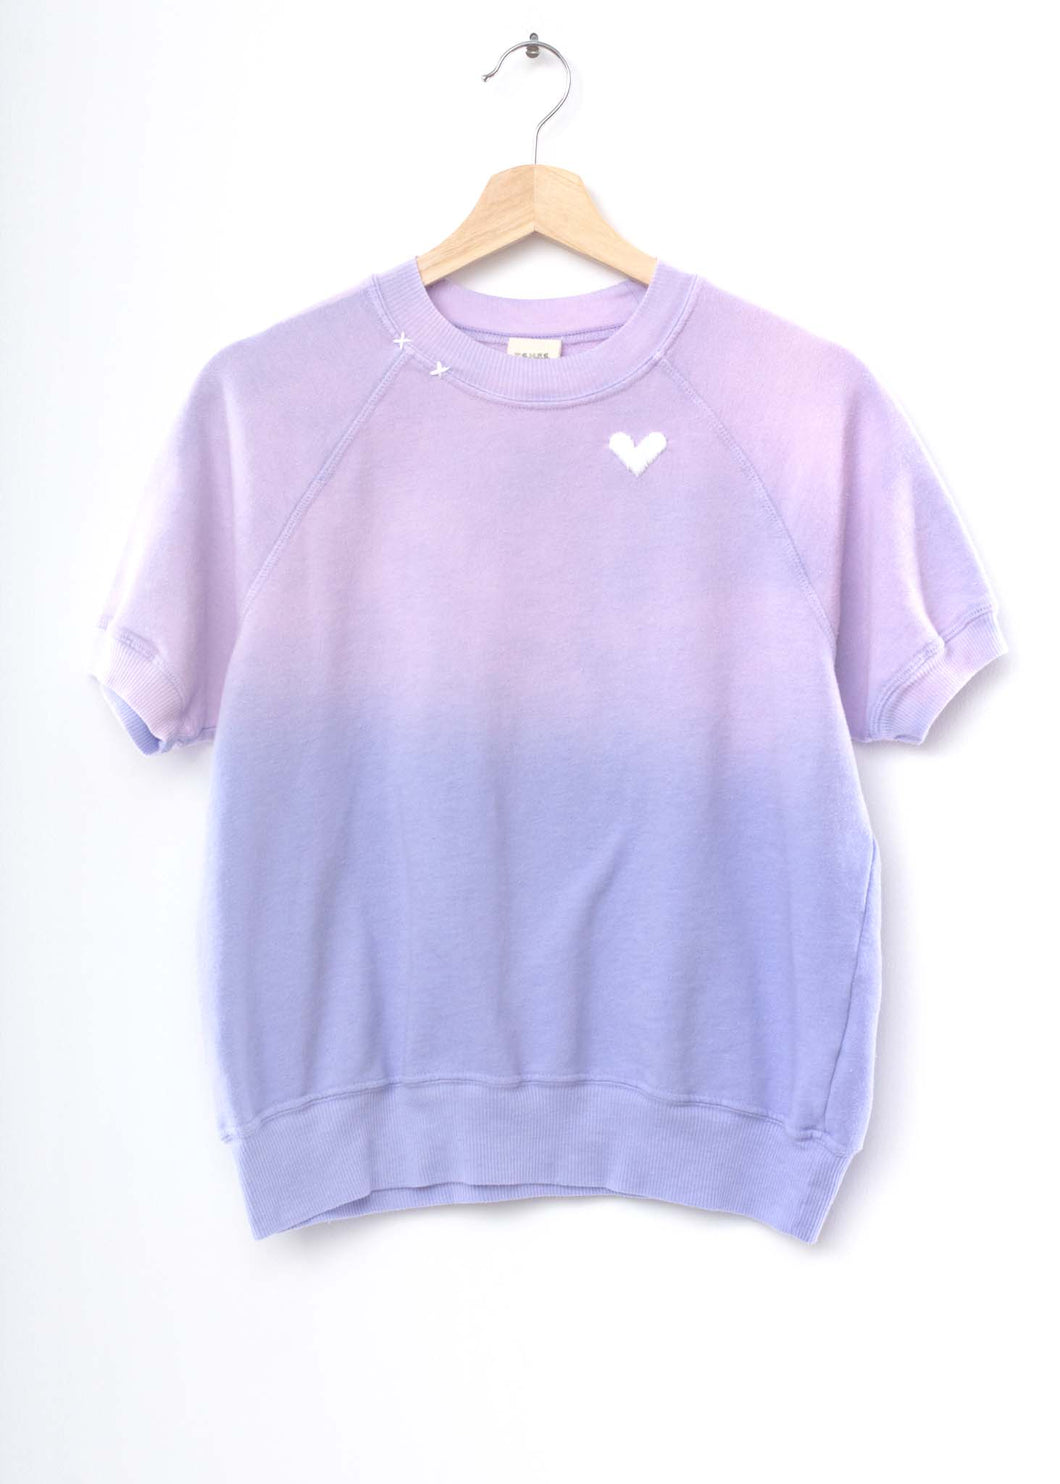 Heart Shorty Sweatshirt- Pastel Lavender